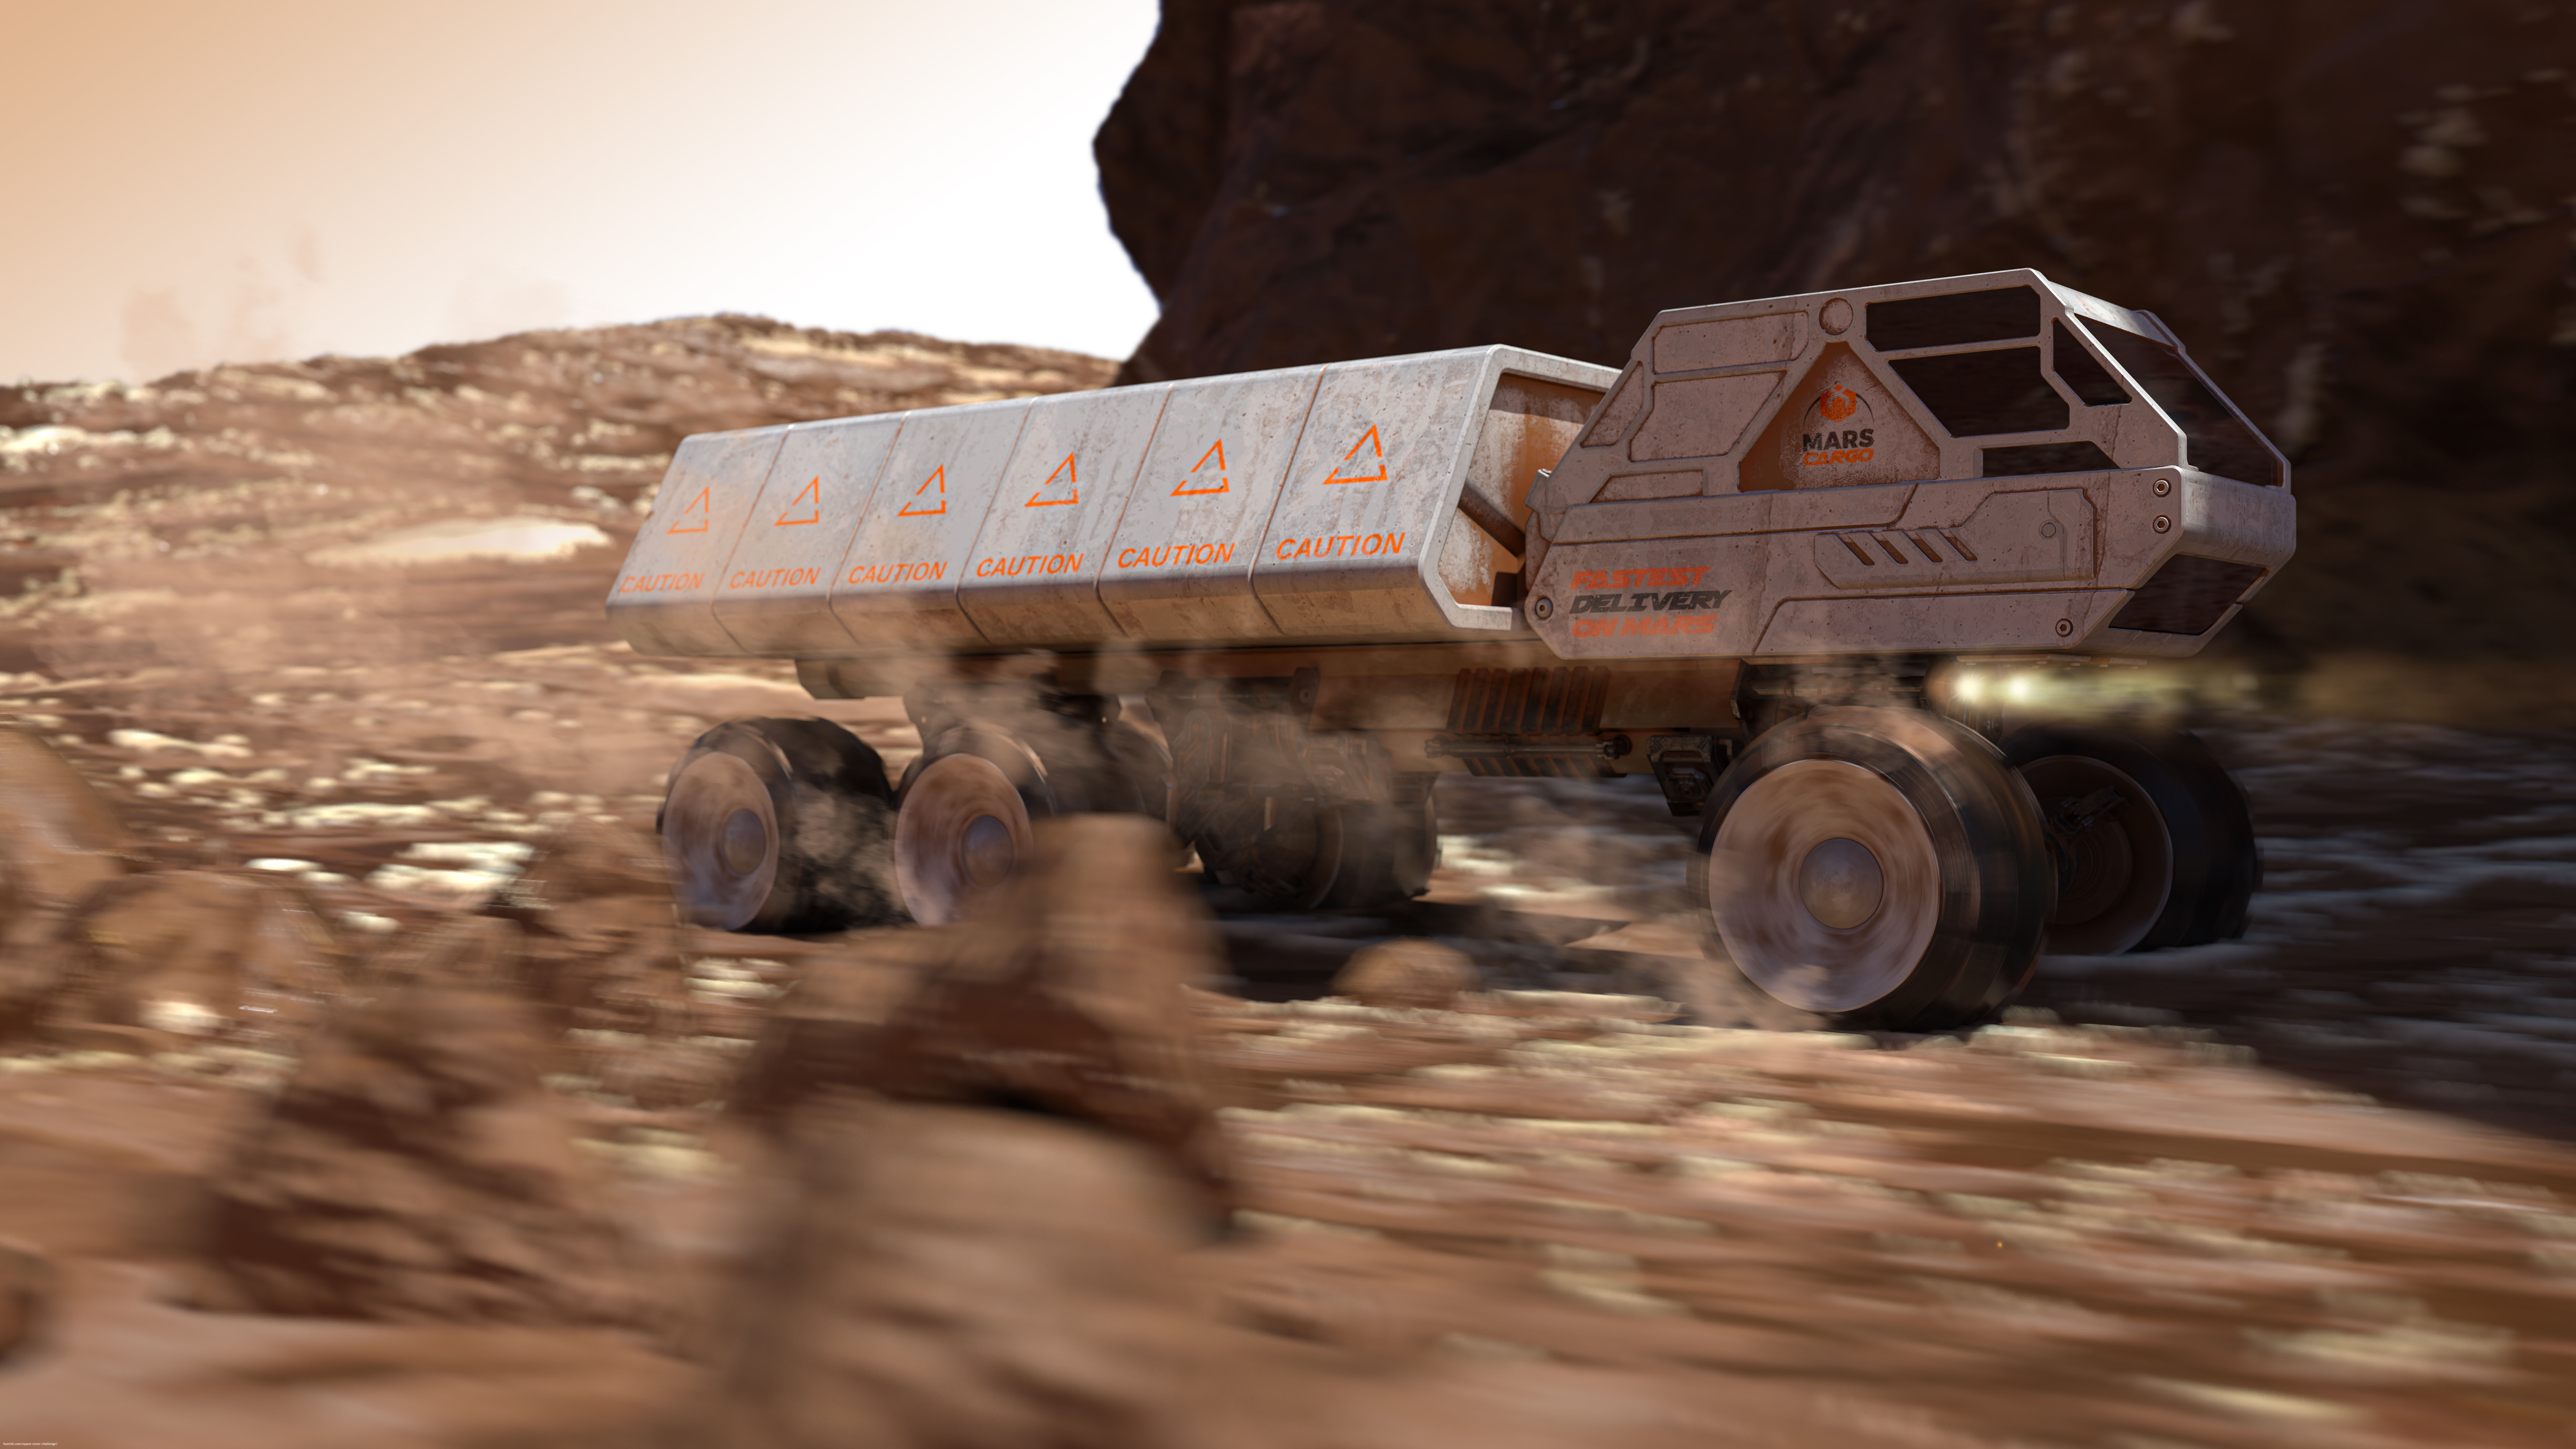 Mars Cargo: the fastest delivery on Mars 3d art